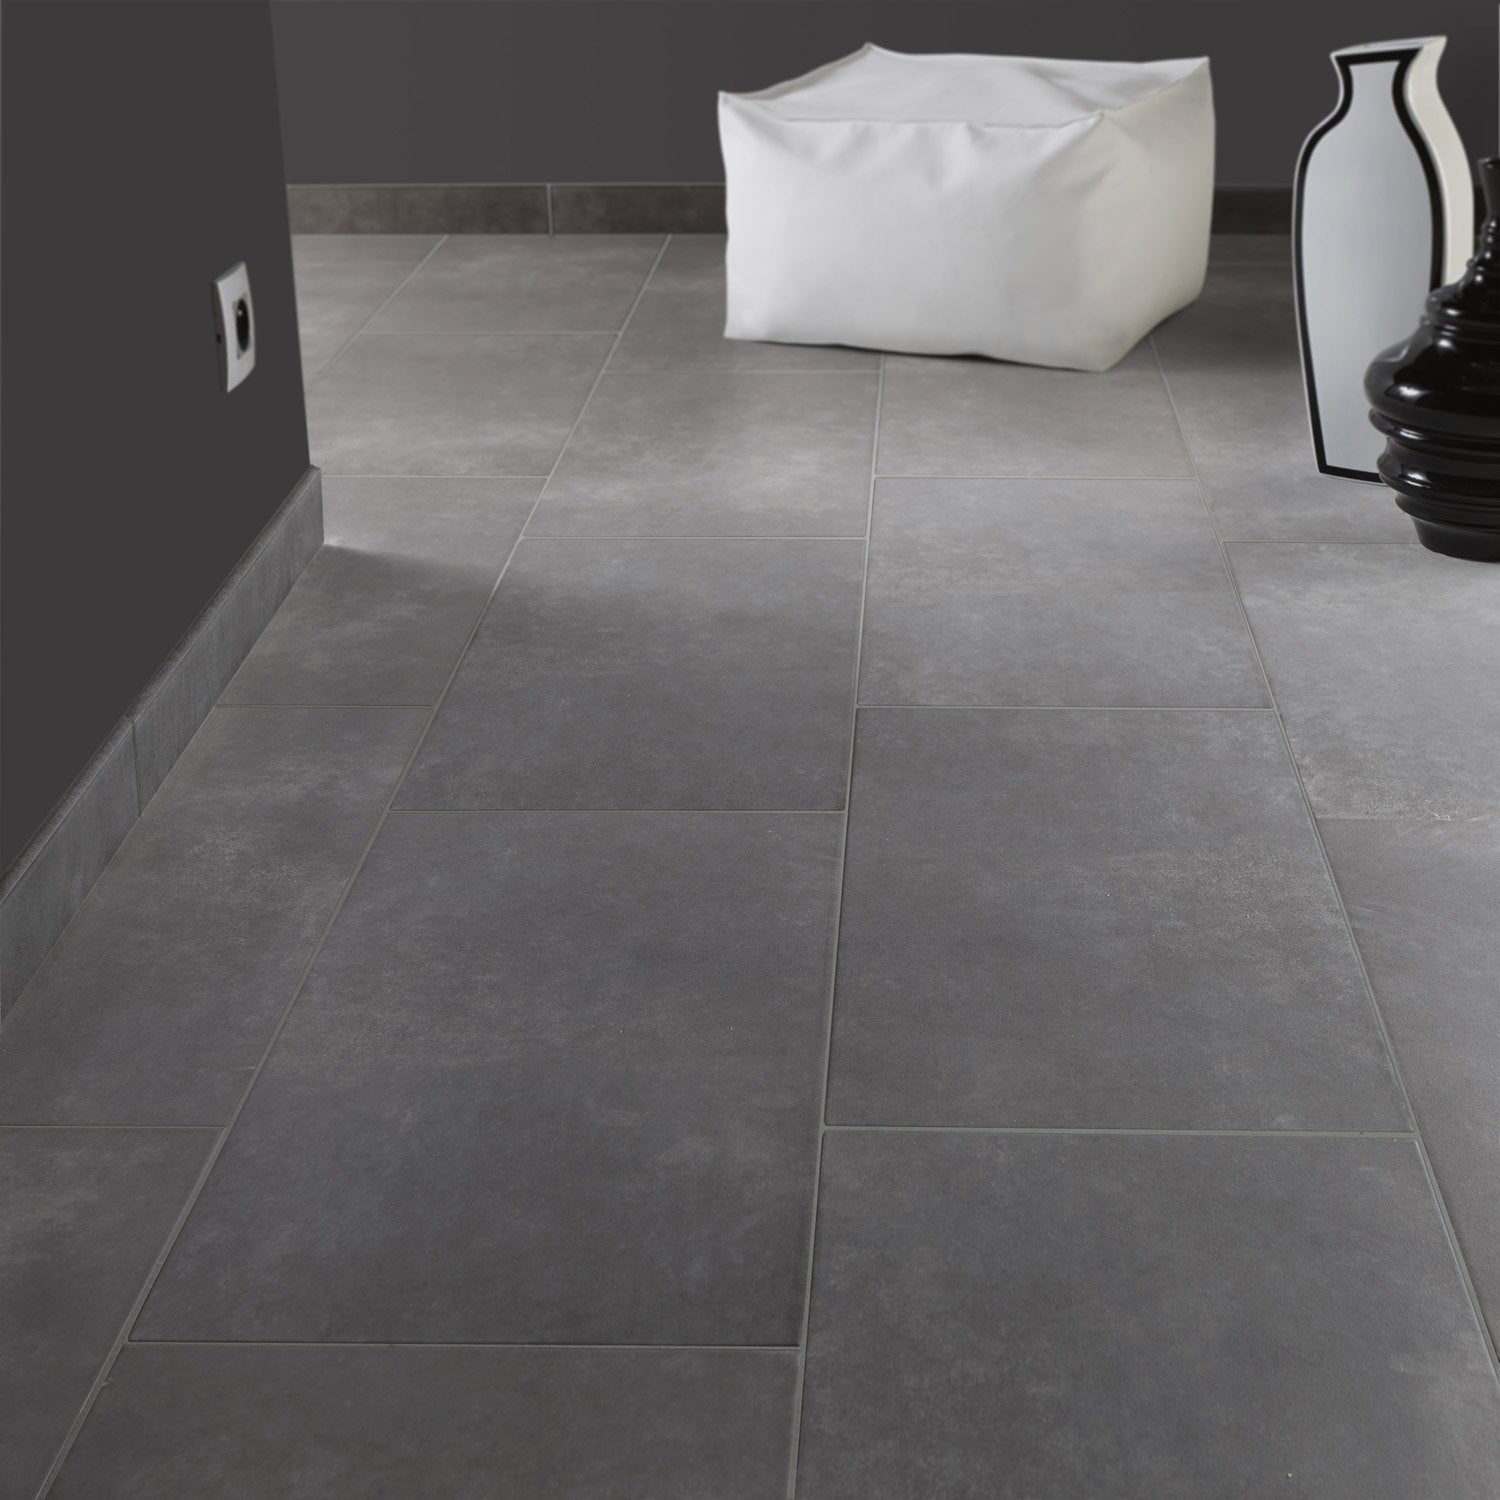 Carrelage sol et mur anthracite effet b ton soho x for Carrelage 60x60 gris anthracite